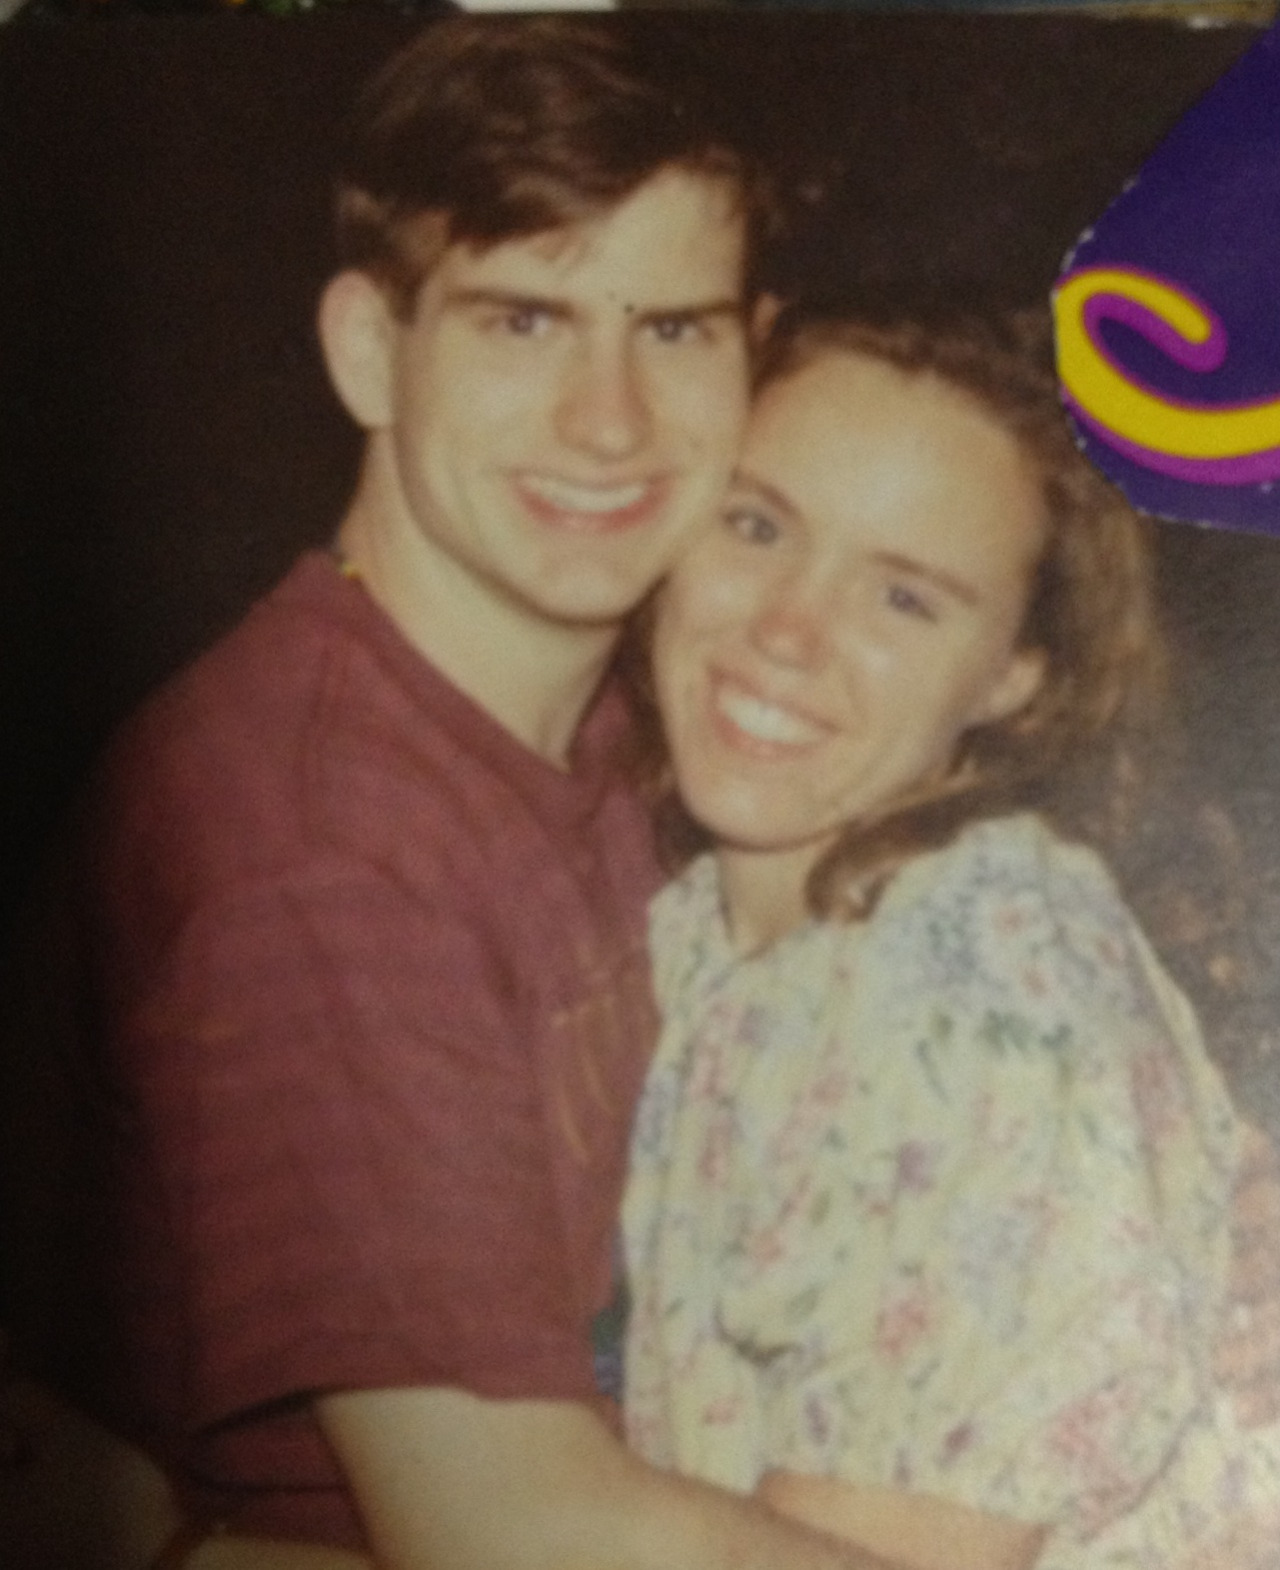 wifeoftj:  Happy Twentieth dating anniversary, babe! I love you.  TJ:  Reblogging this just so more of you can reply 'Gross' in case you missed it earlier.